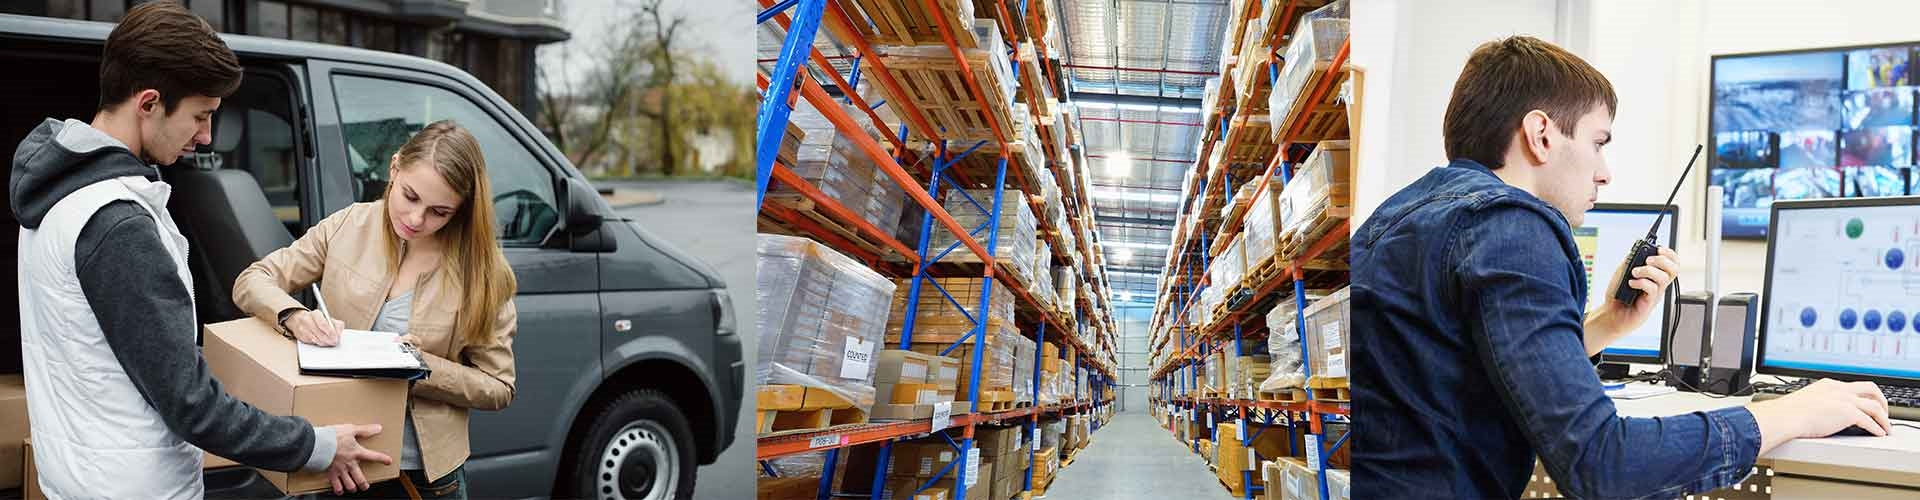 Radio Hire Couriers, Warehouse and Distribution